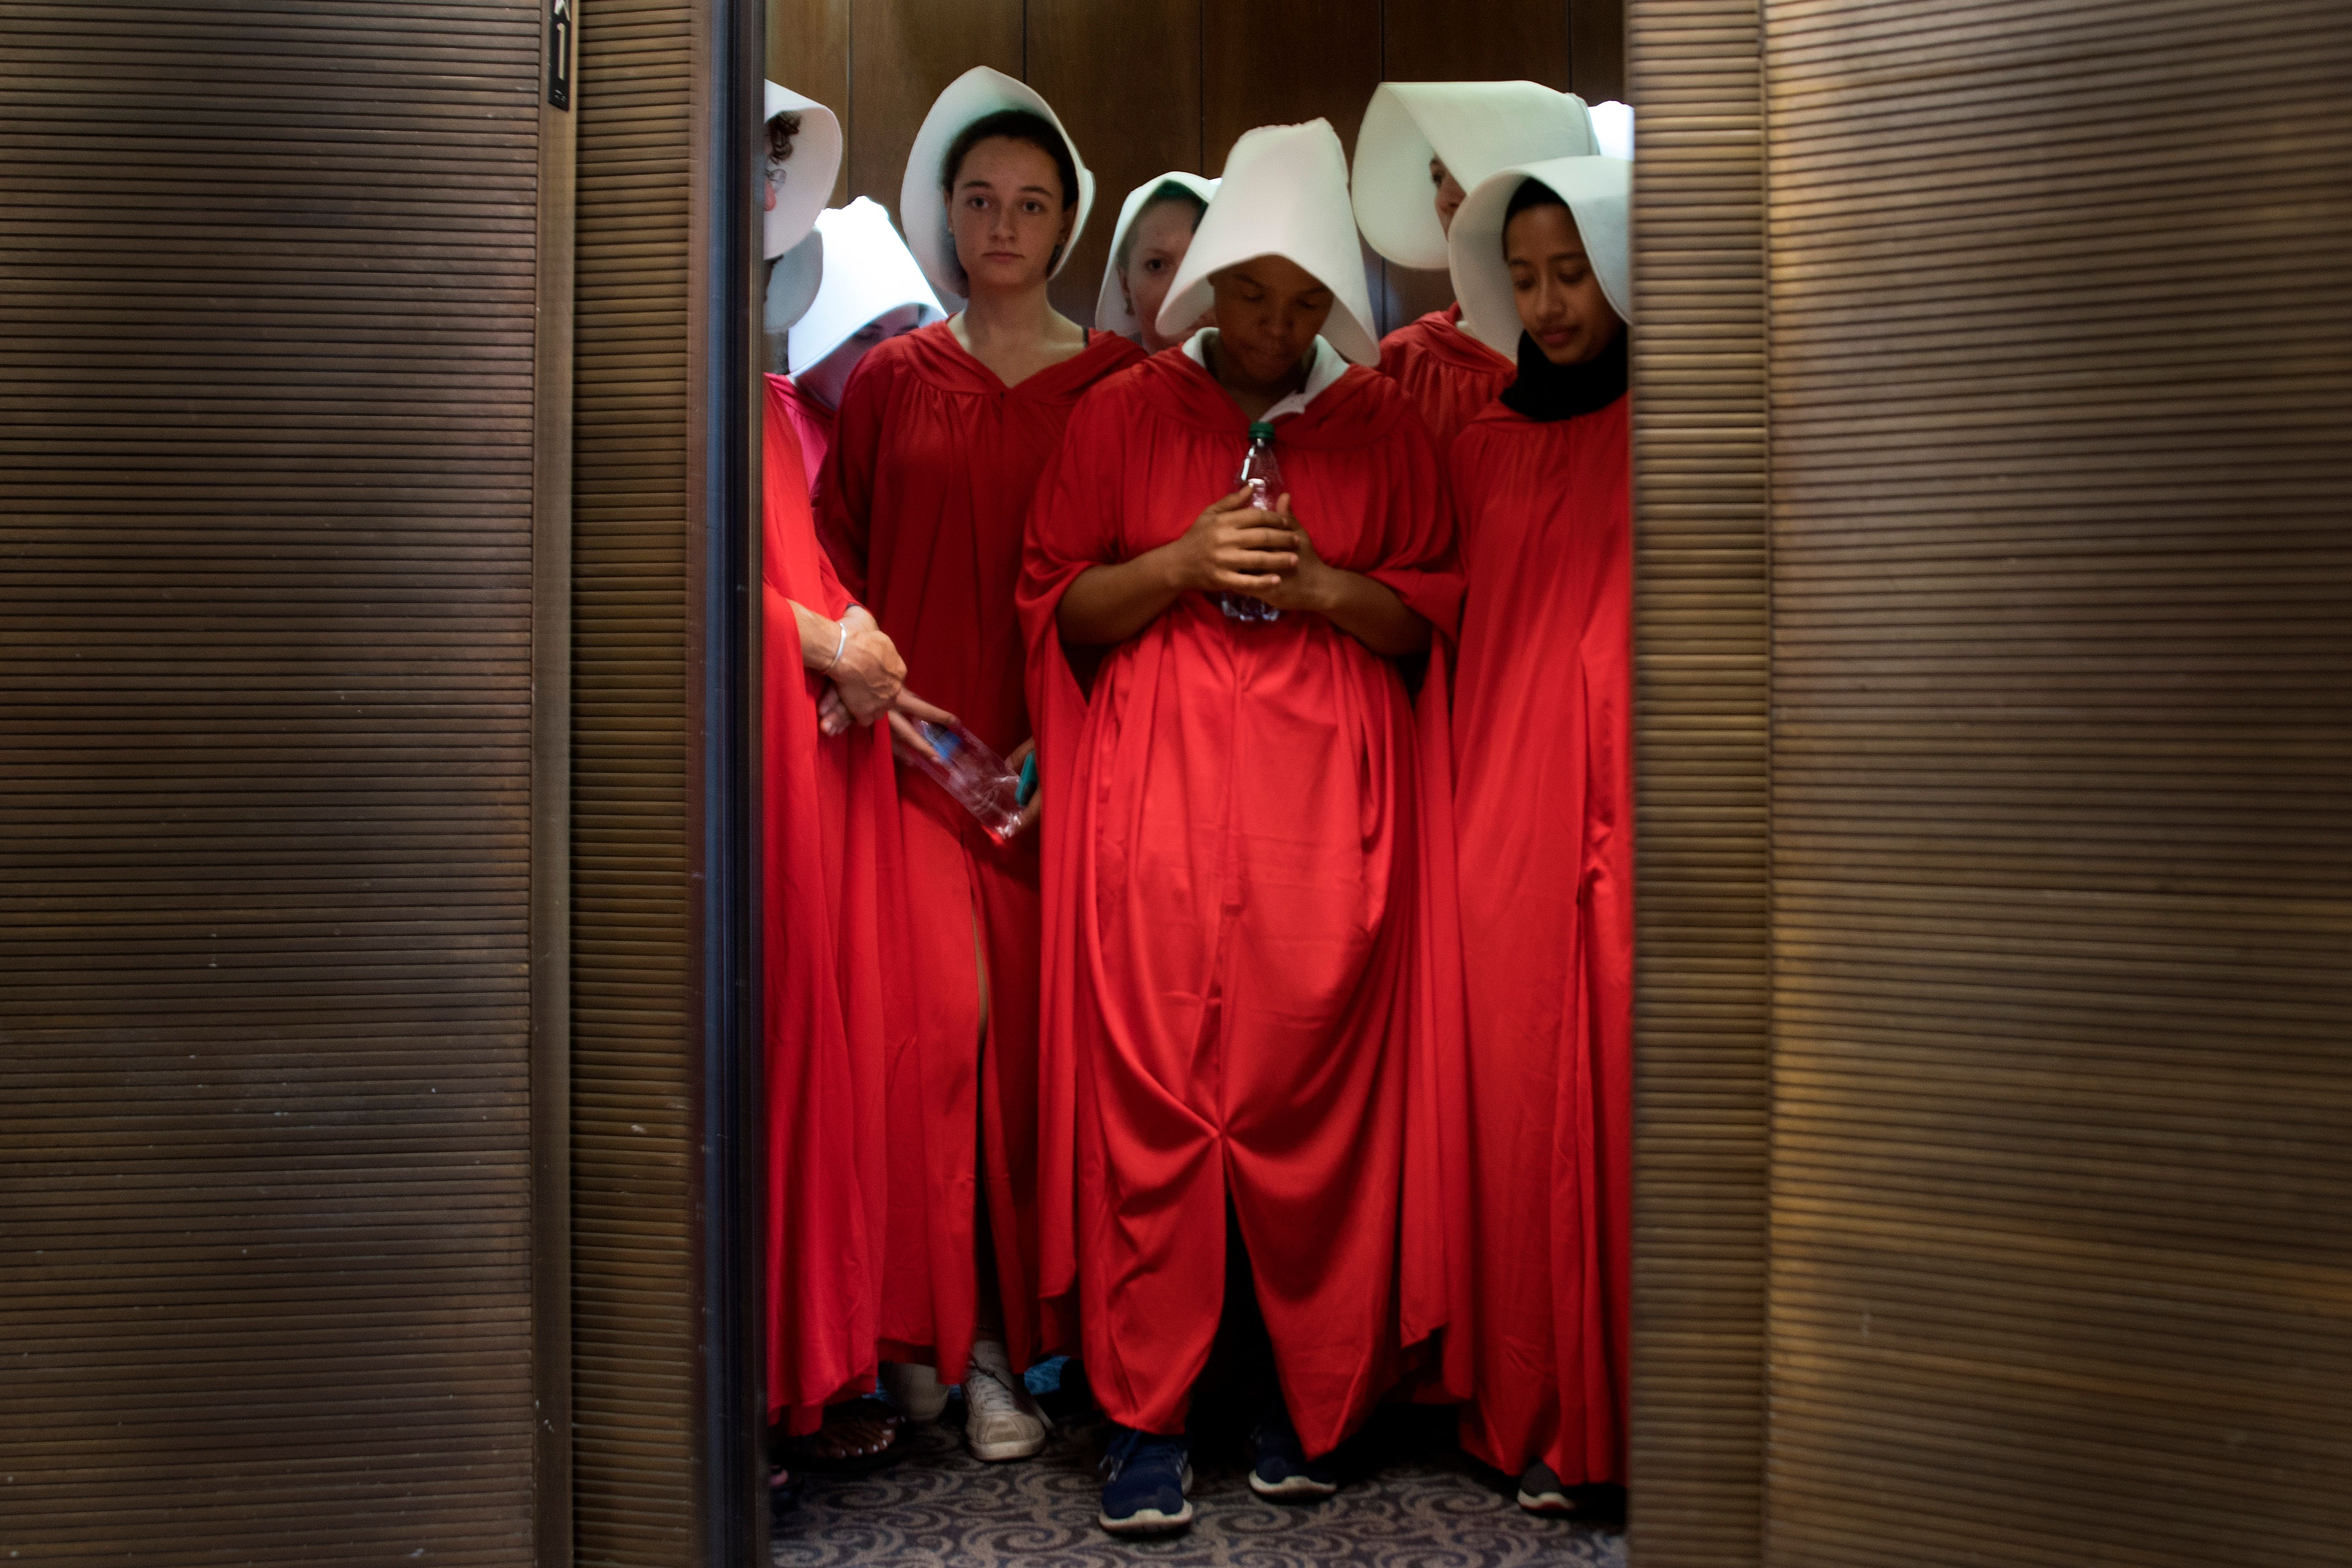 "TOPSHOT - Women dressed as characters from the novel-turned-TV series ""The Handmaid's Tale"" stand in an elevator at the Hart Senate Office Building as Supreme Court nominee Brett Kavanaugh starts the first day of his confirmation hearing in front of the US Senate on Capitol Hill in Washington DC, on September 4, 2018. - President Donald Trump's newest Supreme Court nominee Brett Kavanaugh is expected to face punishing questioning from Democrats this week over his endorsement of presidential immunity and his opposition to abortion. Some two dozen witnesses are lined up to argue for and against confirming Kavanaugh, who could swing the nine-member high court decidedly in conservatives' favor for years to come. Democrats have mobilized heavily to prevent his approval. (Photo by Jim WATSON / AFP) (Photo by JIM WATSON/AFP via Getty Images)"